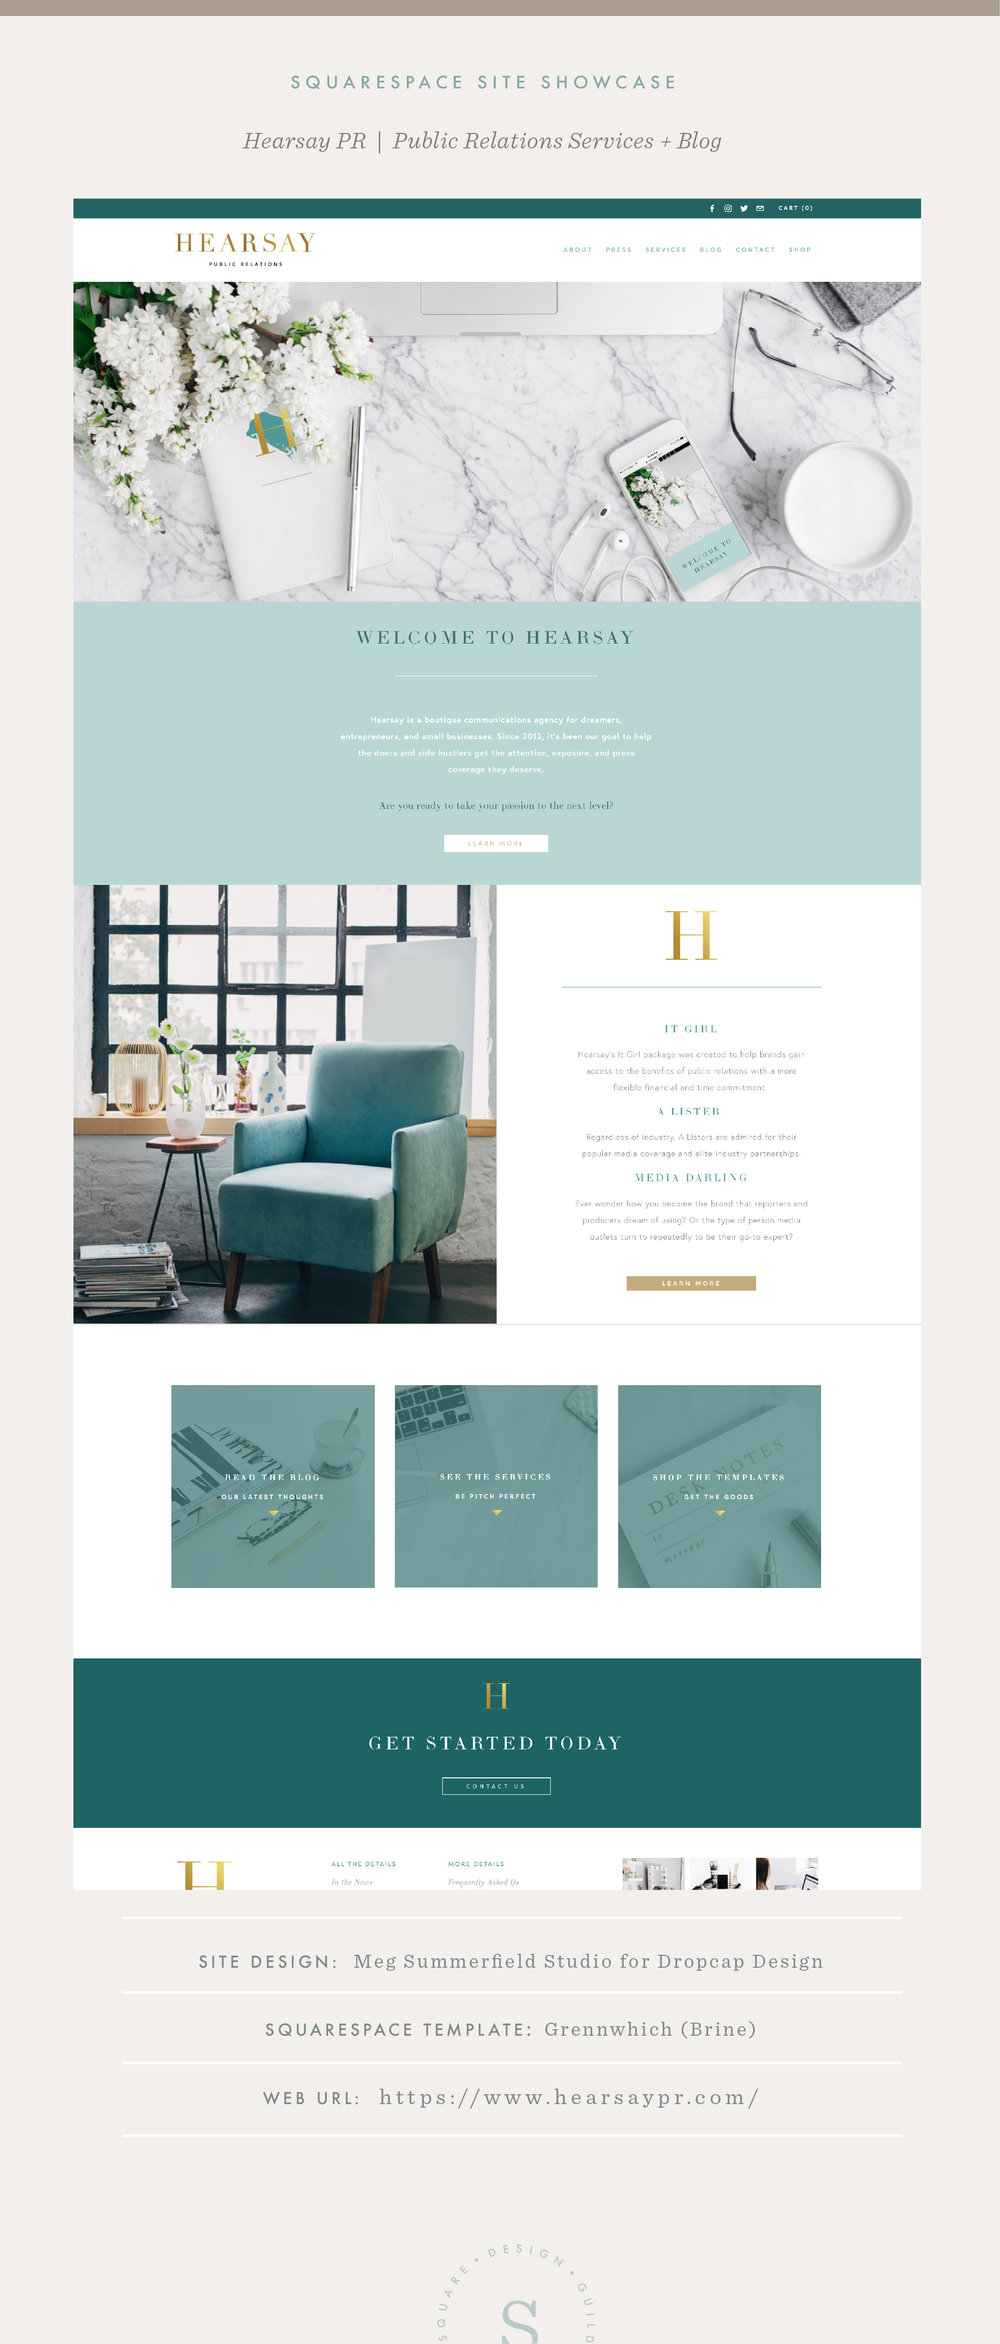 Squarespace Site Showcase Hearsay PR on the Brine Template - Blog and Public Relations Website